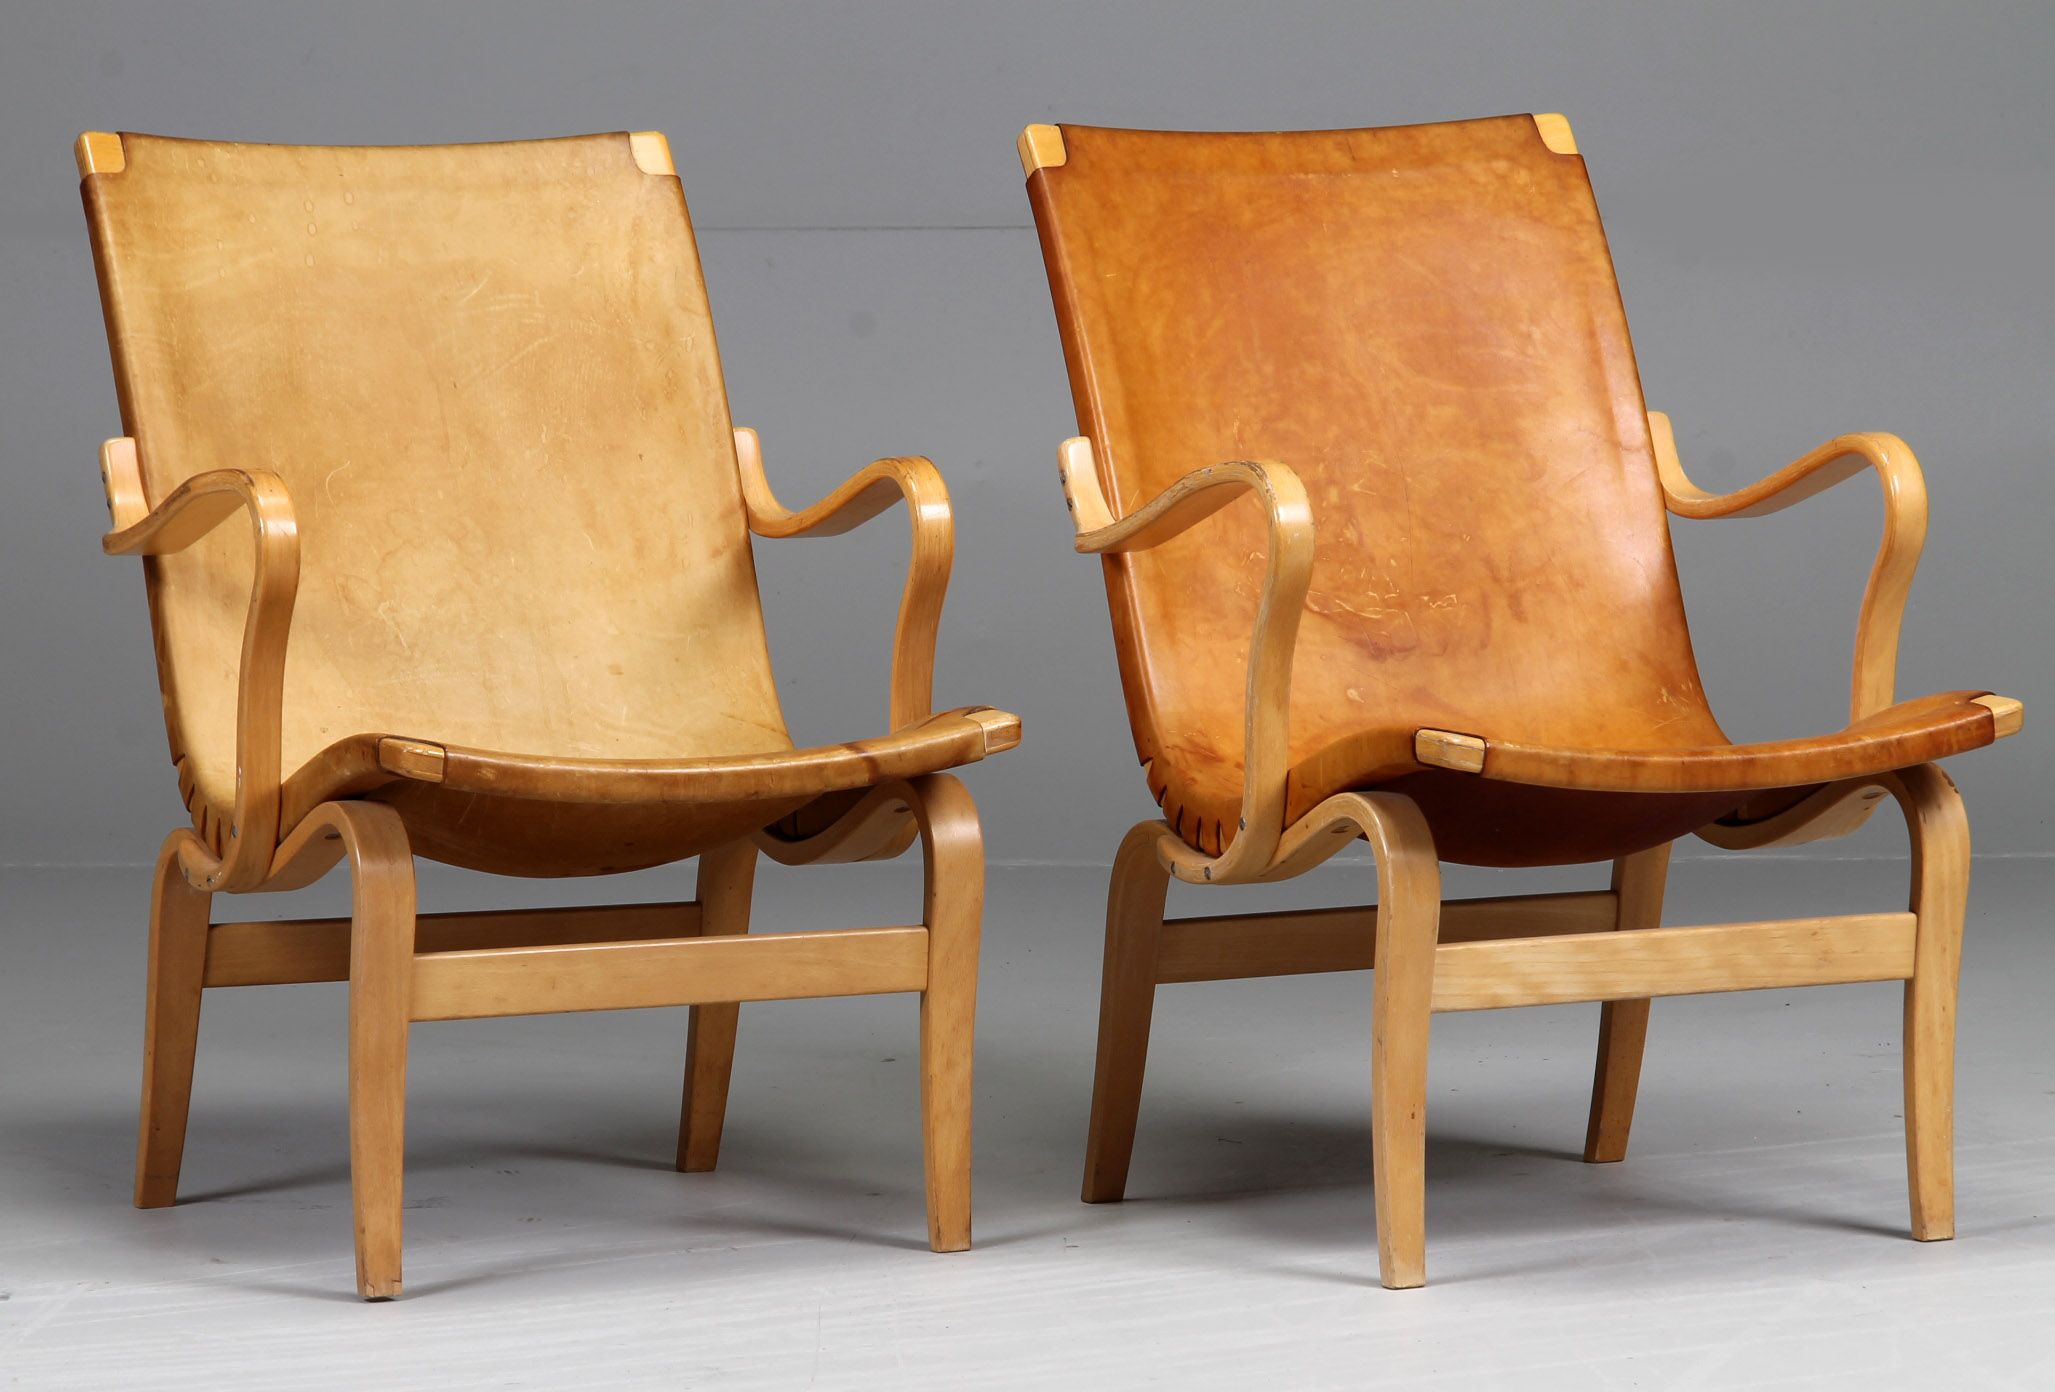 Furniture Classic: Bruno Mathsson - 'Eva' Lounge Chair [Bent Birch Wood & Leather] (1936) Produced by Karl Mathsson